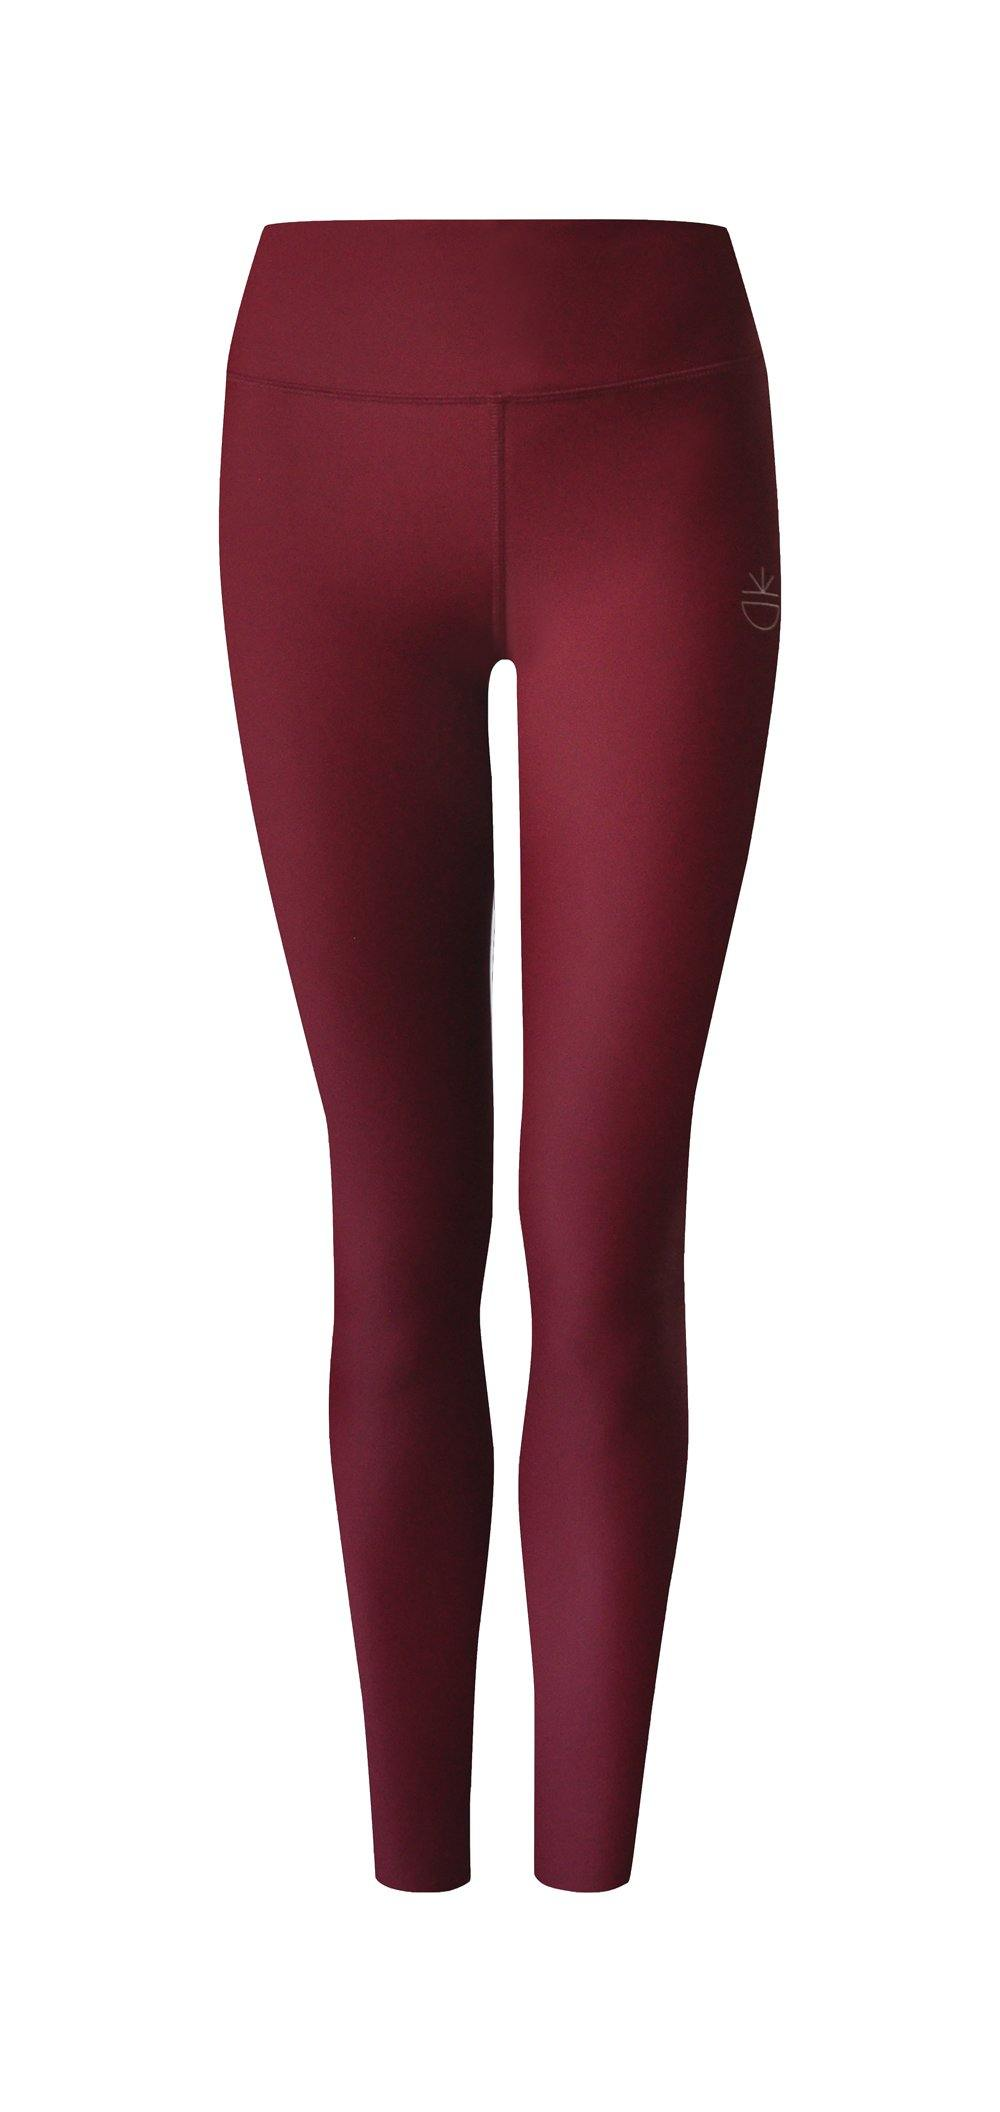 NEW Walk Free Leggings - BESONNEN mindful fashion sustainable - Color:Rot